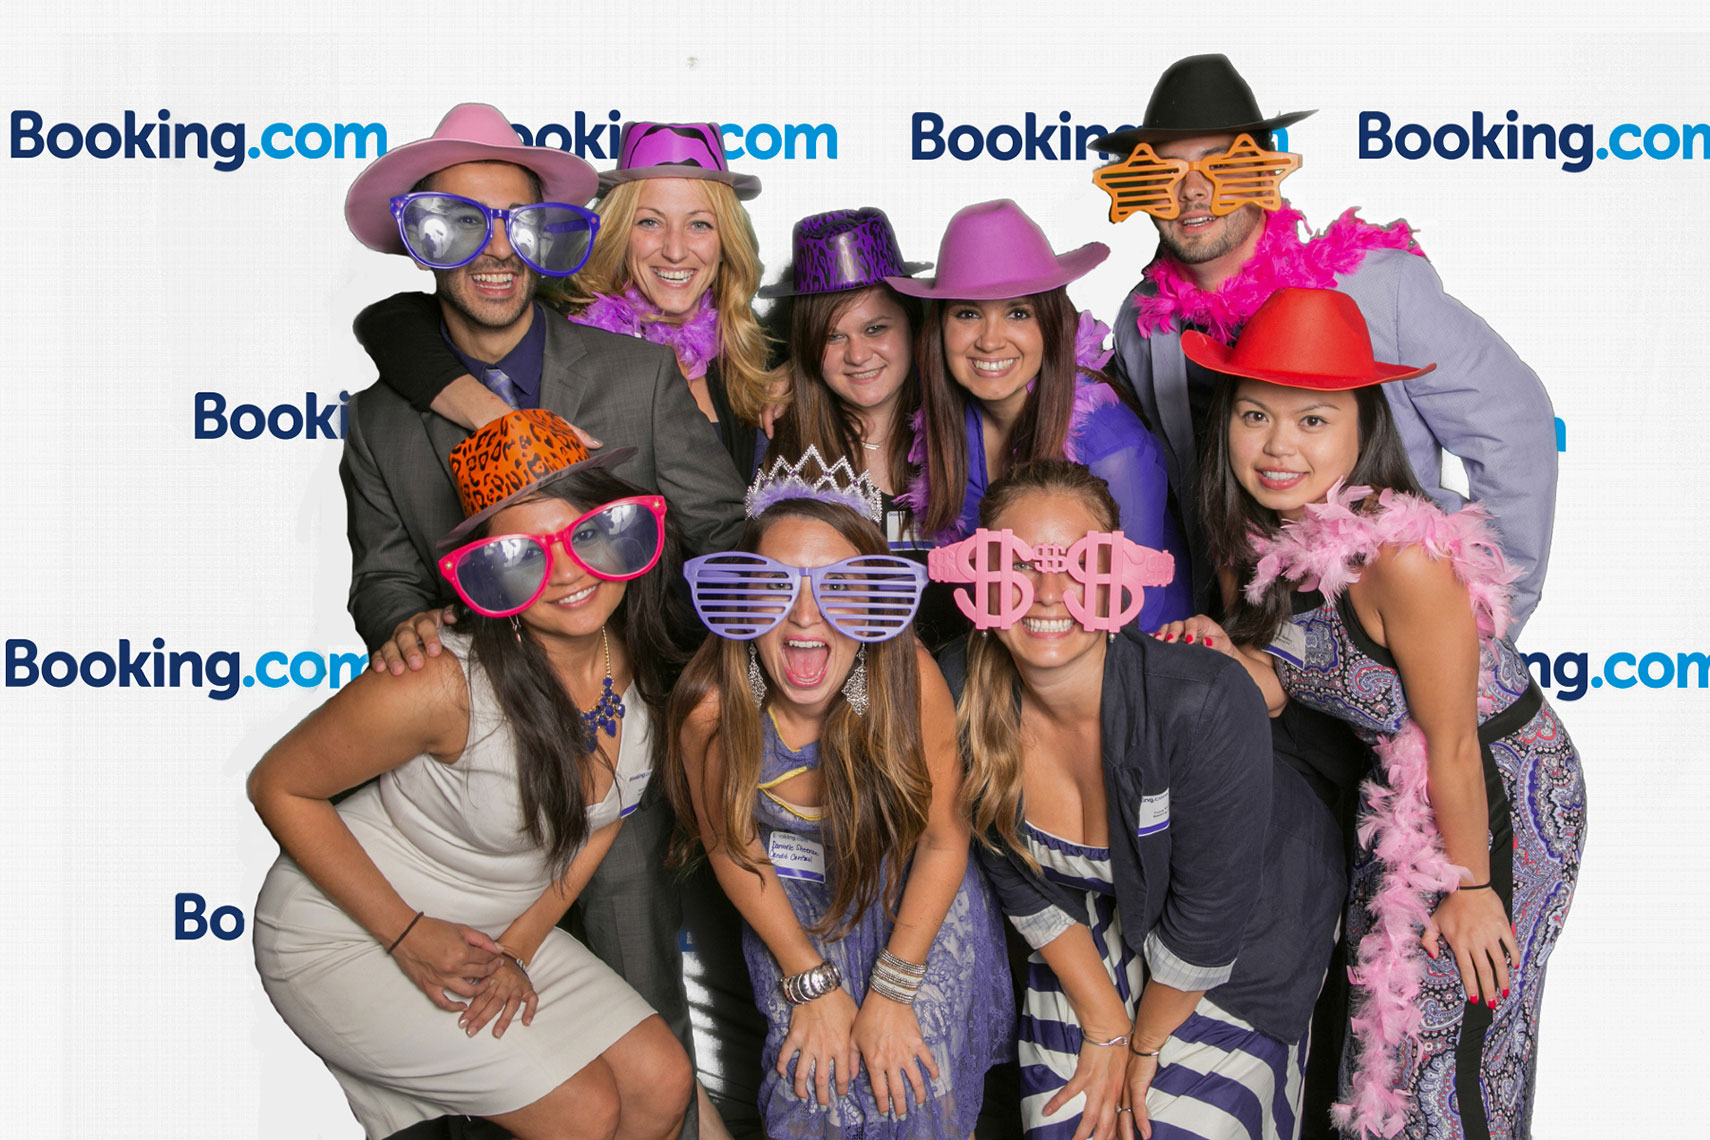 Fun Green Screen Event for Booking.com Employee Outing